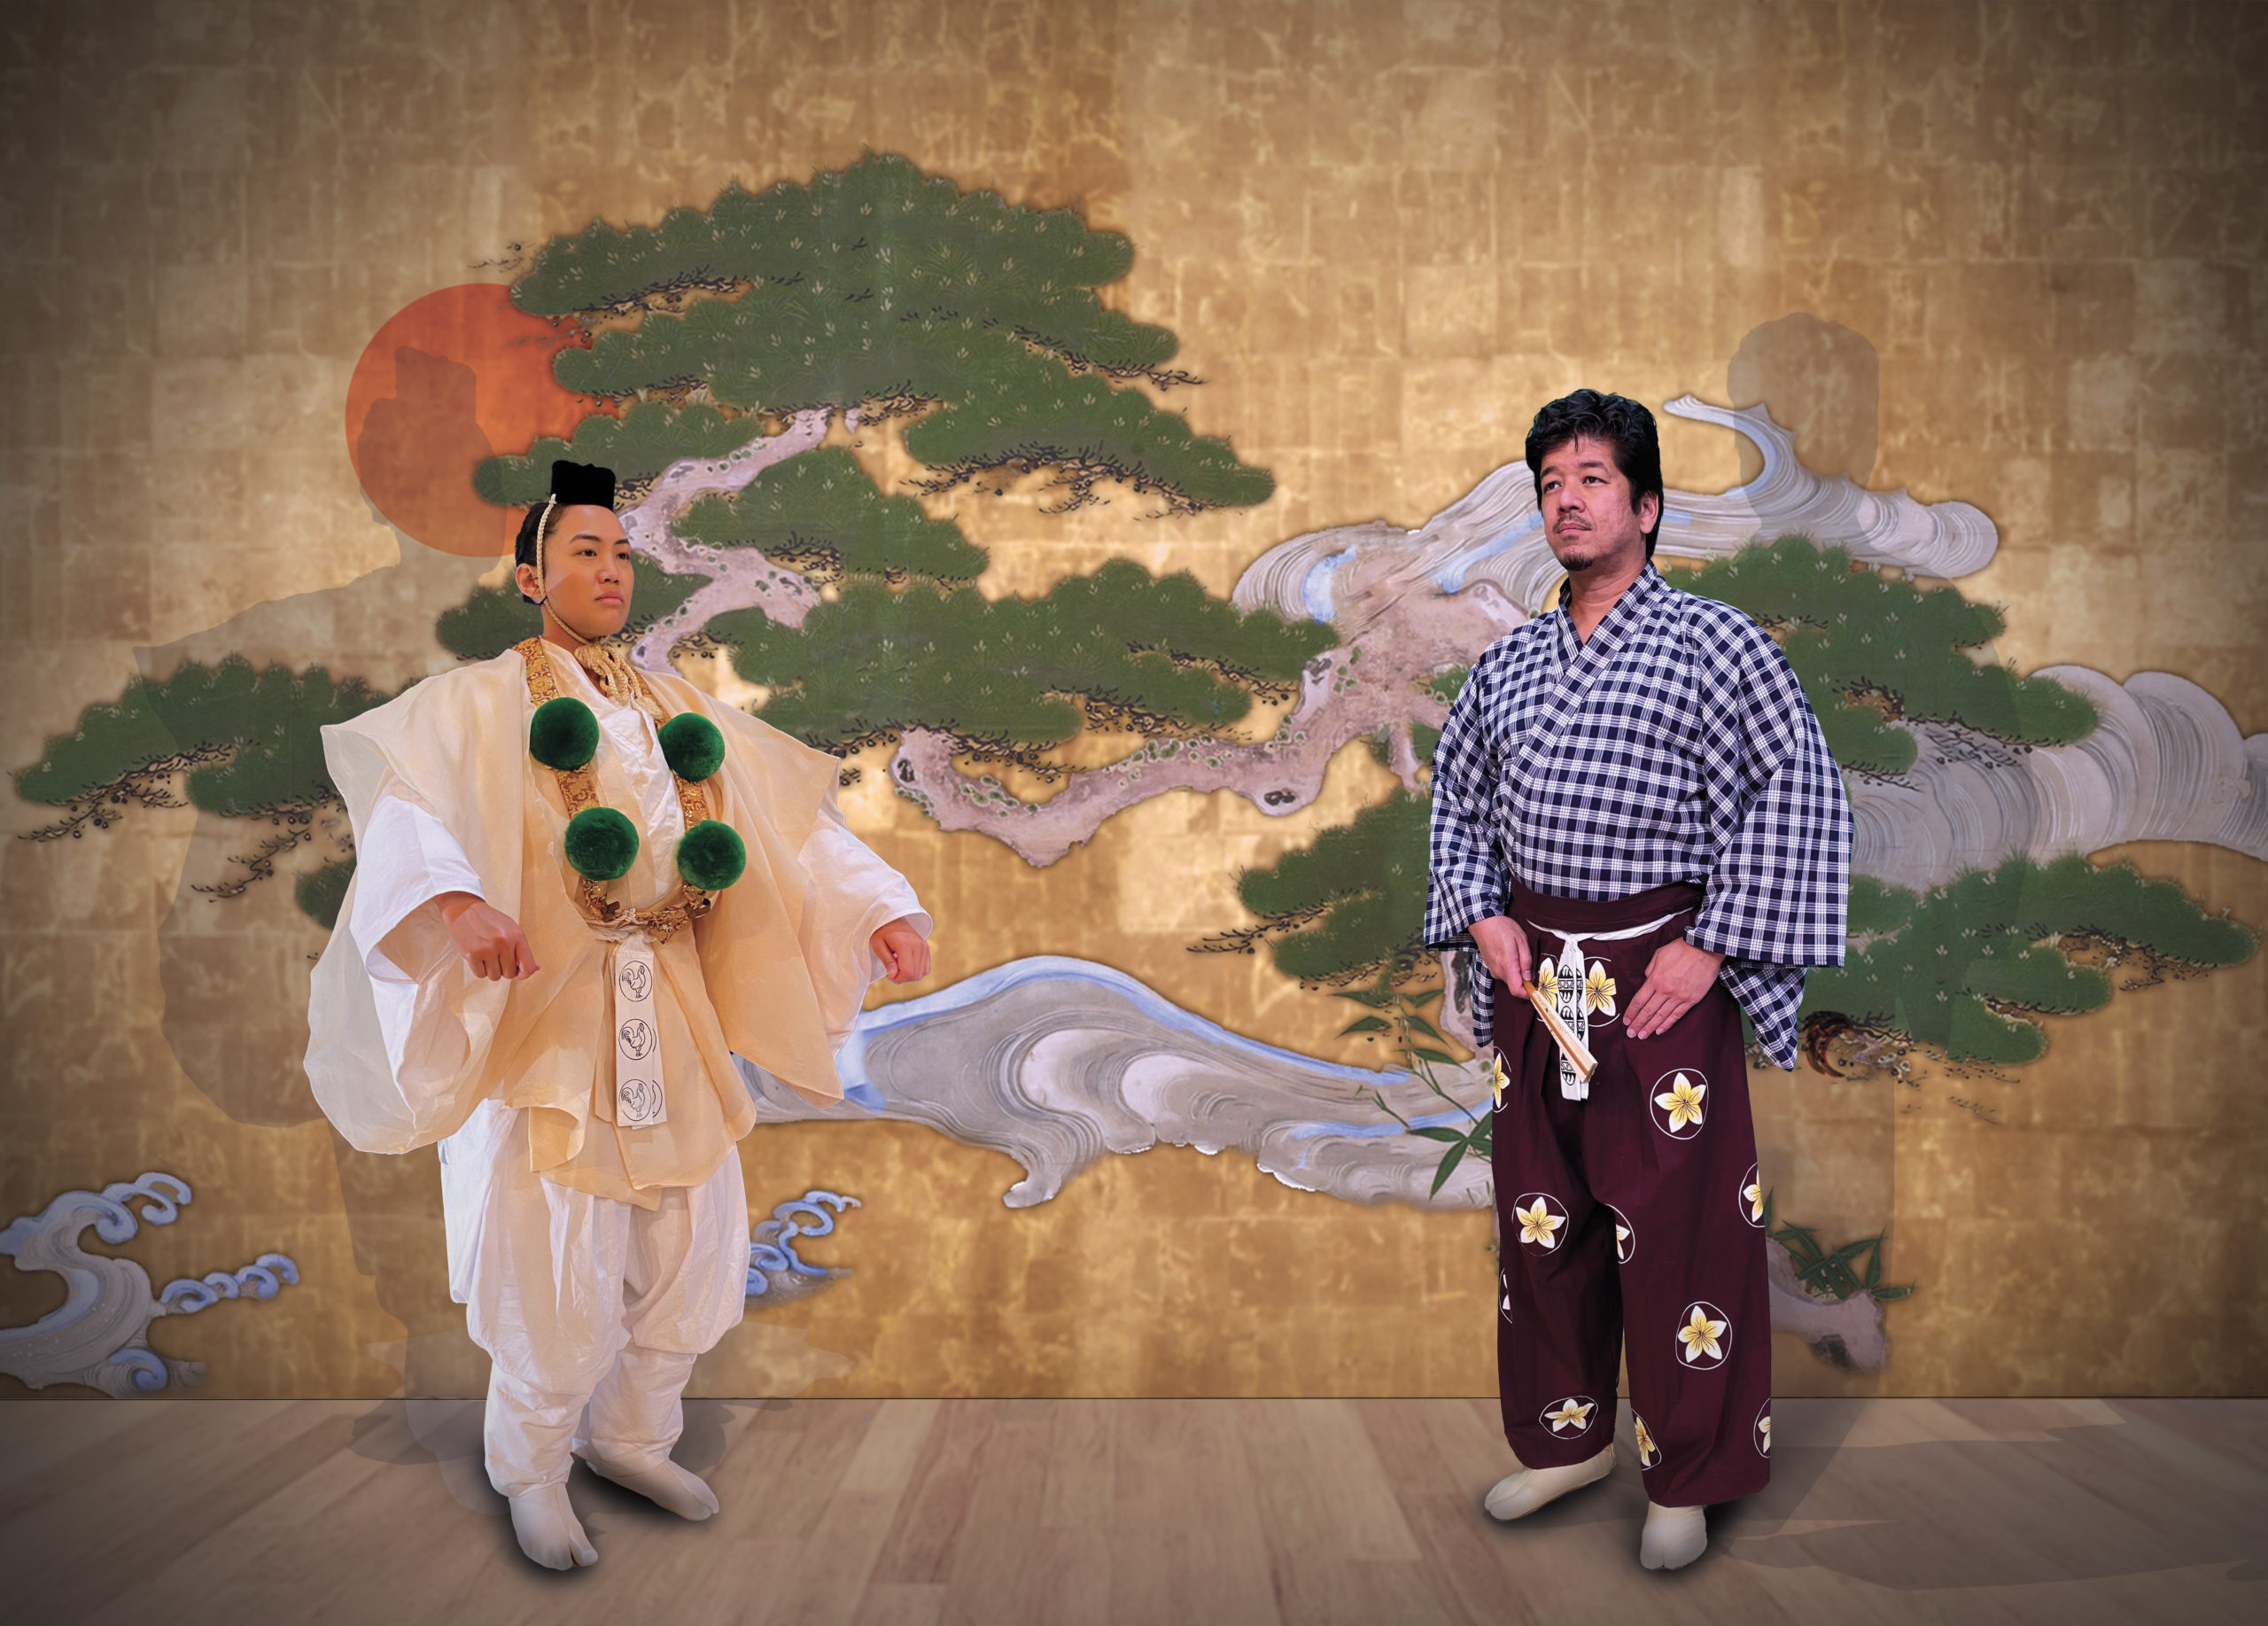 An actor in white yamabushi regalia with green pompoms and an actor with a blue palaka kimono top and plumeria patterned purple hakama stand in front of a pine tree backdrop on a wooden floor